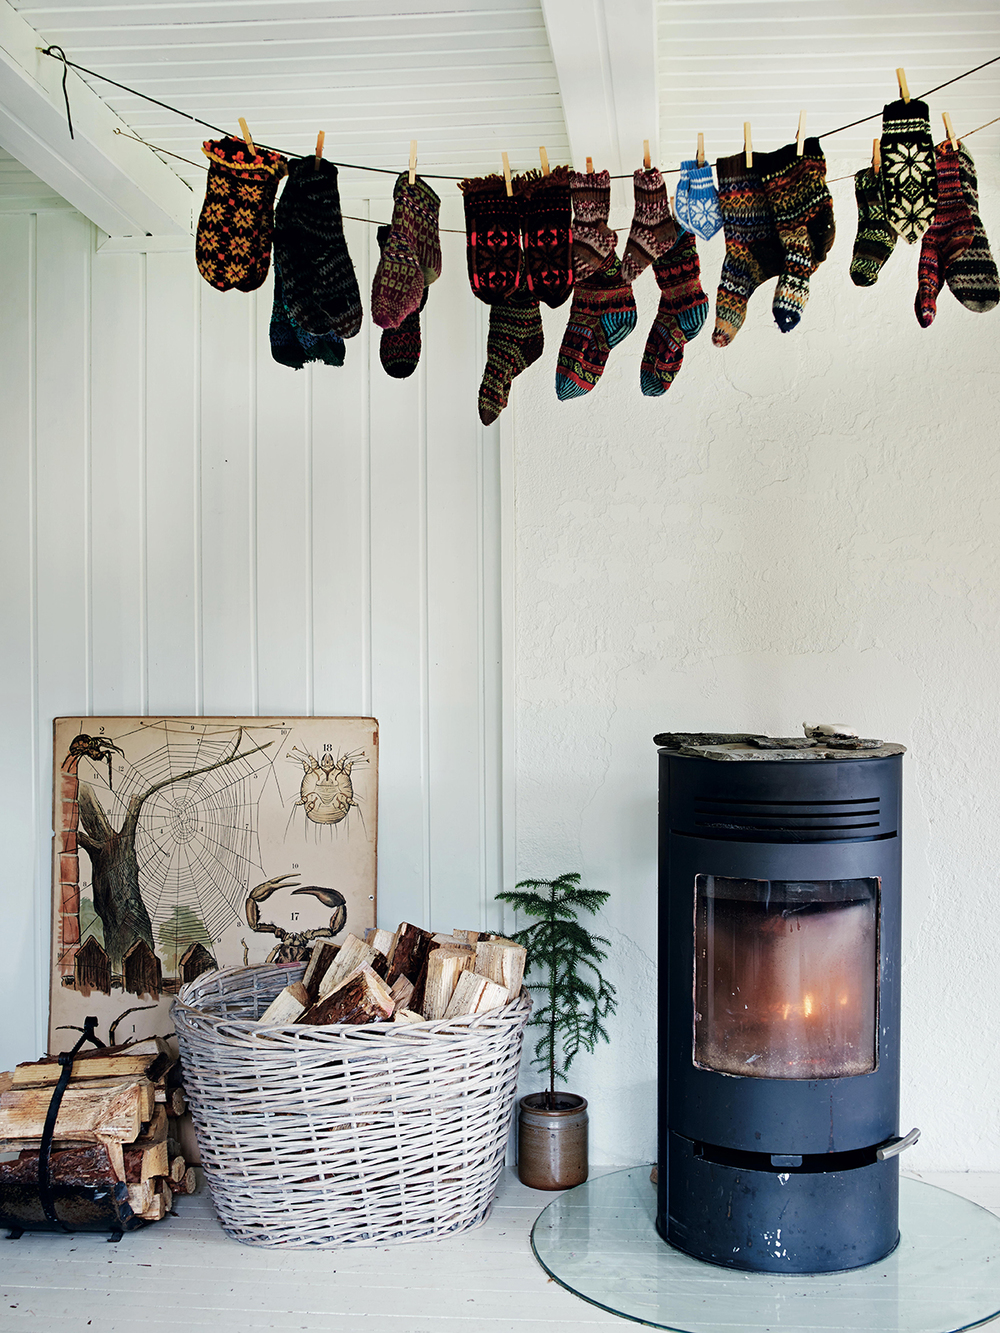 The Photography By Debi Treloar Is Stunning As Always So This Book A Total Feast For Eyes To Be Enjoyed In Front Of Stylish Wood Burning Stove